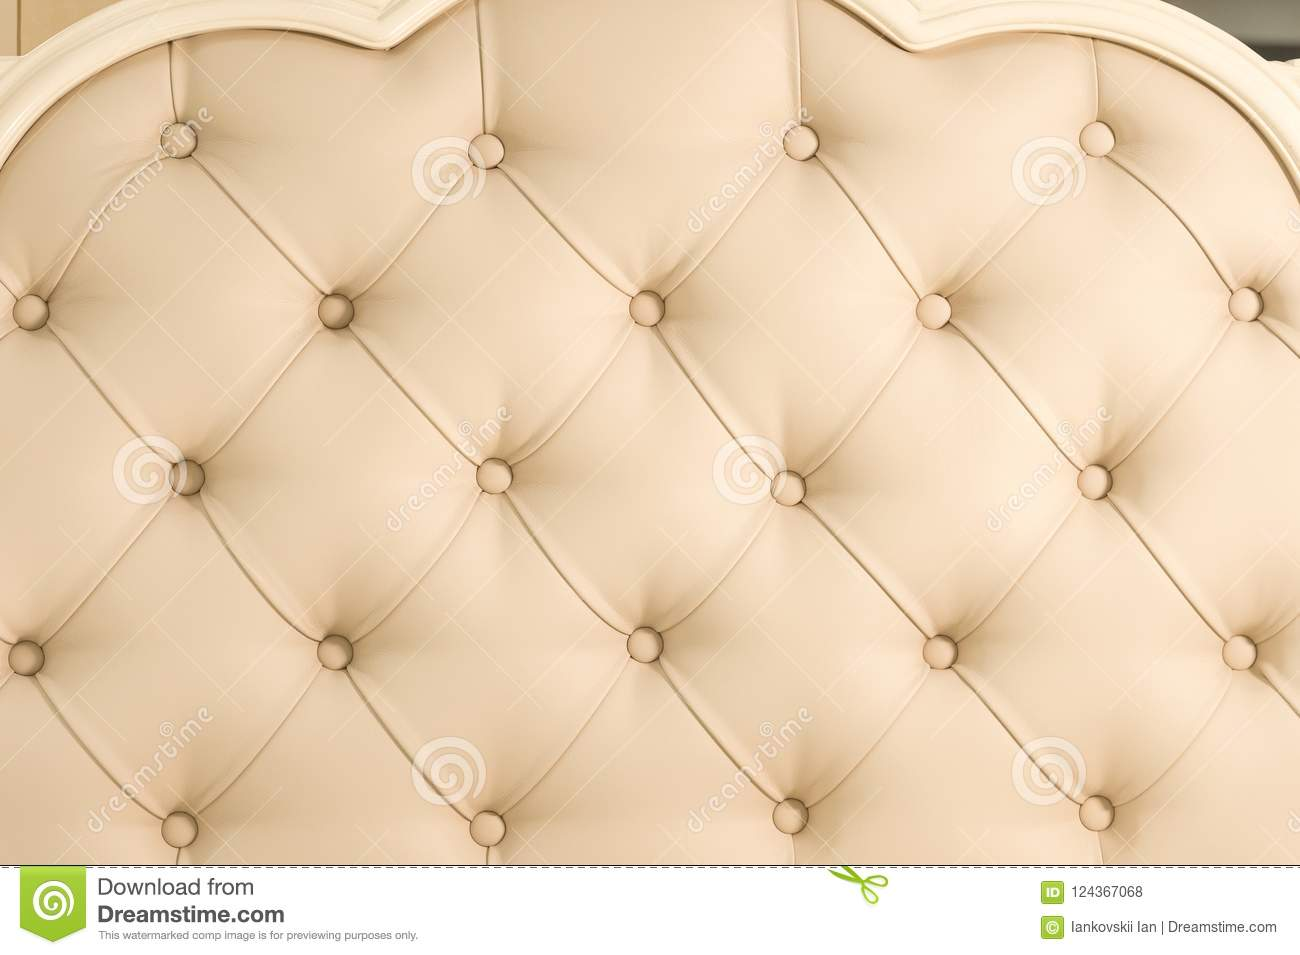 Beige Soft Tapestry Pattern Background With Symmetrical Buttons On The  Corners Of Diamonds. Soft And Expensive Furniture Elements. Luxury  Background.